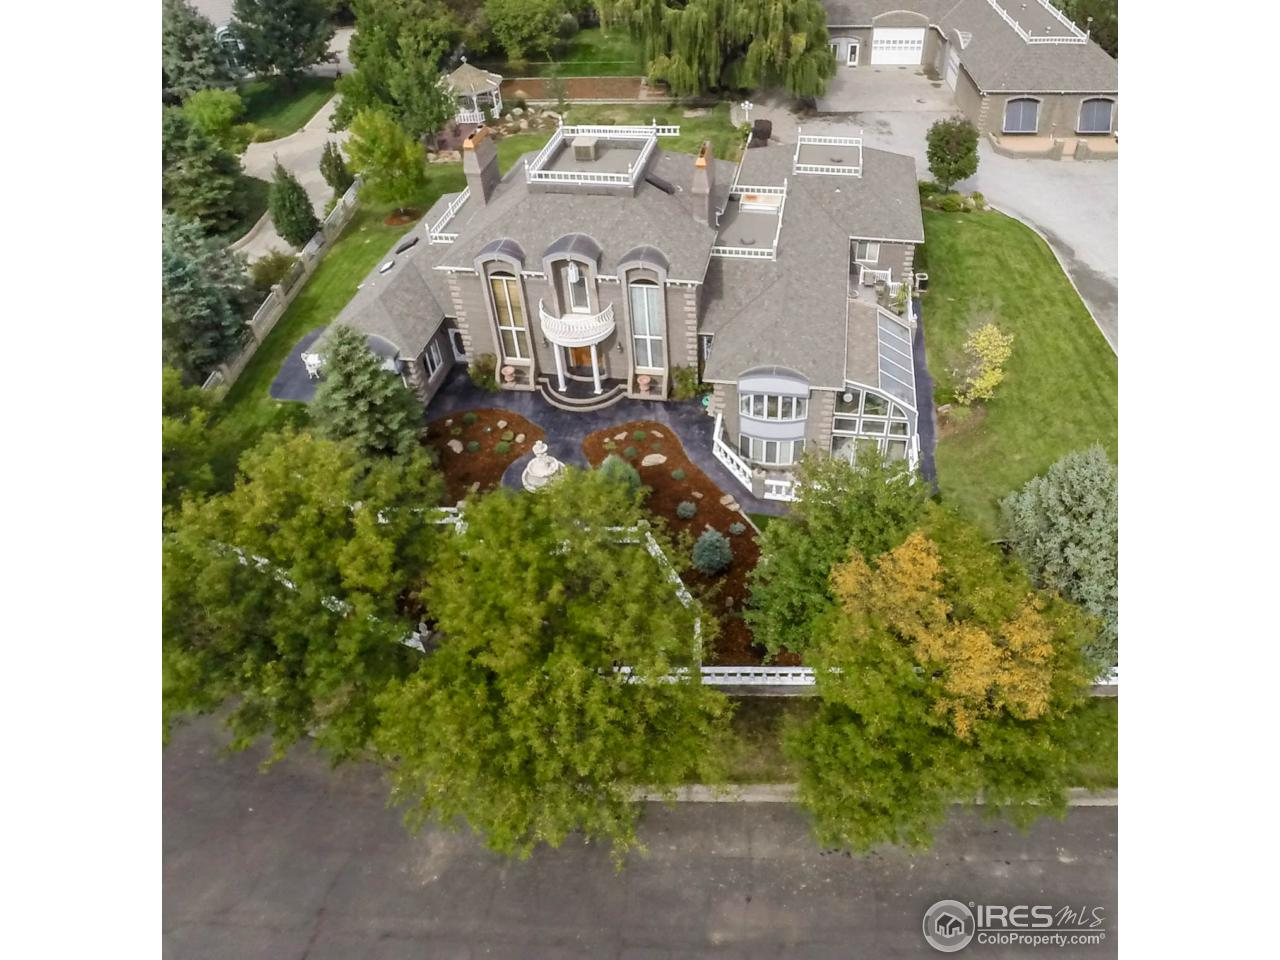 Gorgeous French Provincial Estate w/shop, offices &/or carriage house. Well thought out living areas w/marble & wood floors, beautiful European elegance & the finest craftsmanship throughout. 4+ fplcs, energy efficient heat sources. Landscape & grounds are immaculate. Shop is 6000+ SF w/paint booth, car hoist & 800 SF structure for add'l storage. Home & improvements have been lovingly maintained by builder/original owner. Irrigation from Seeley Lake at add'l cost & boating membership required.